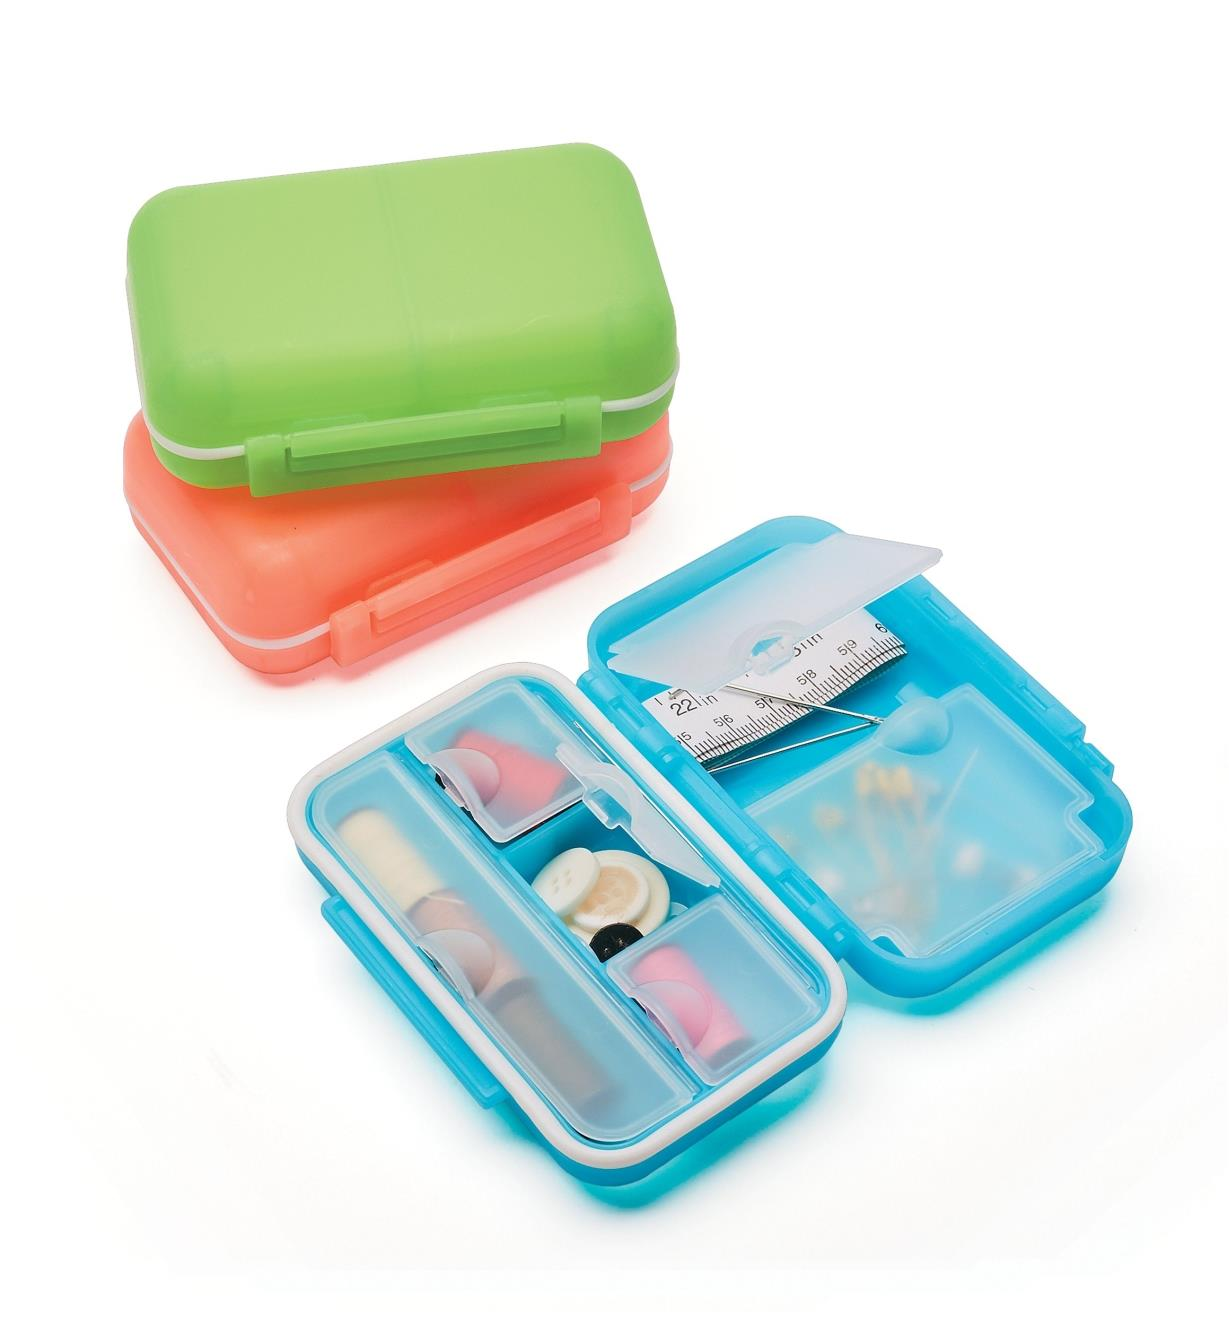 Three Locking Pocket Cases: two closed and one open, filled with sewing supplies